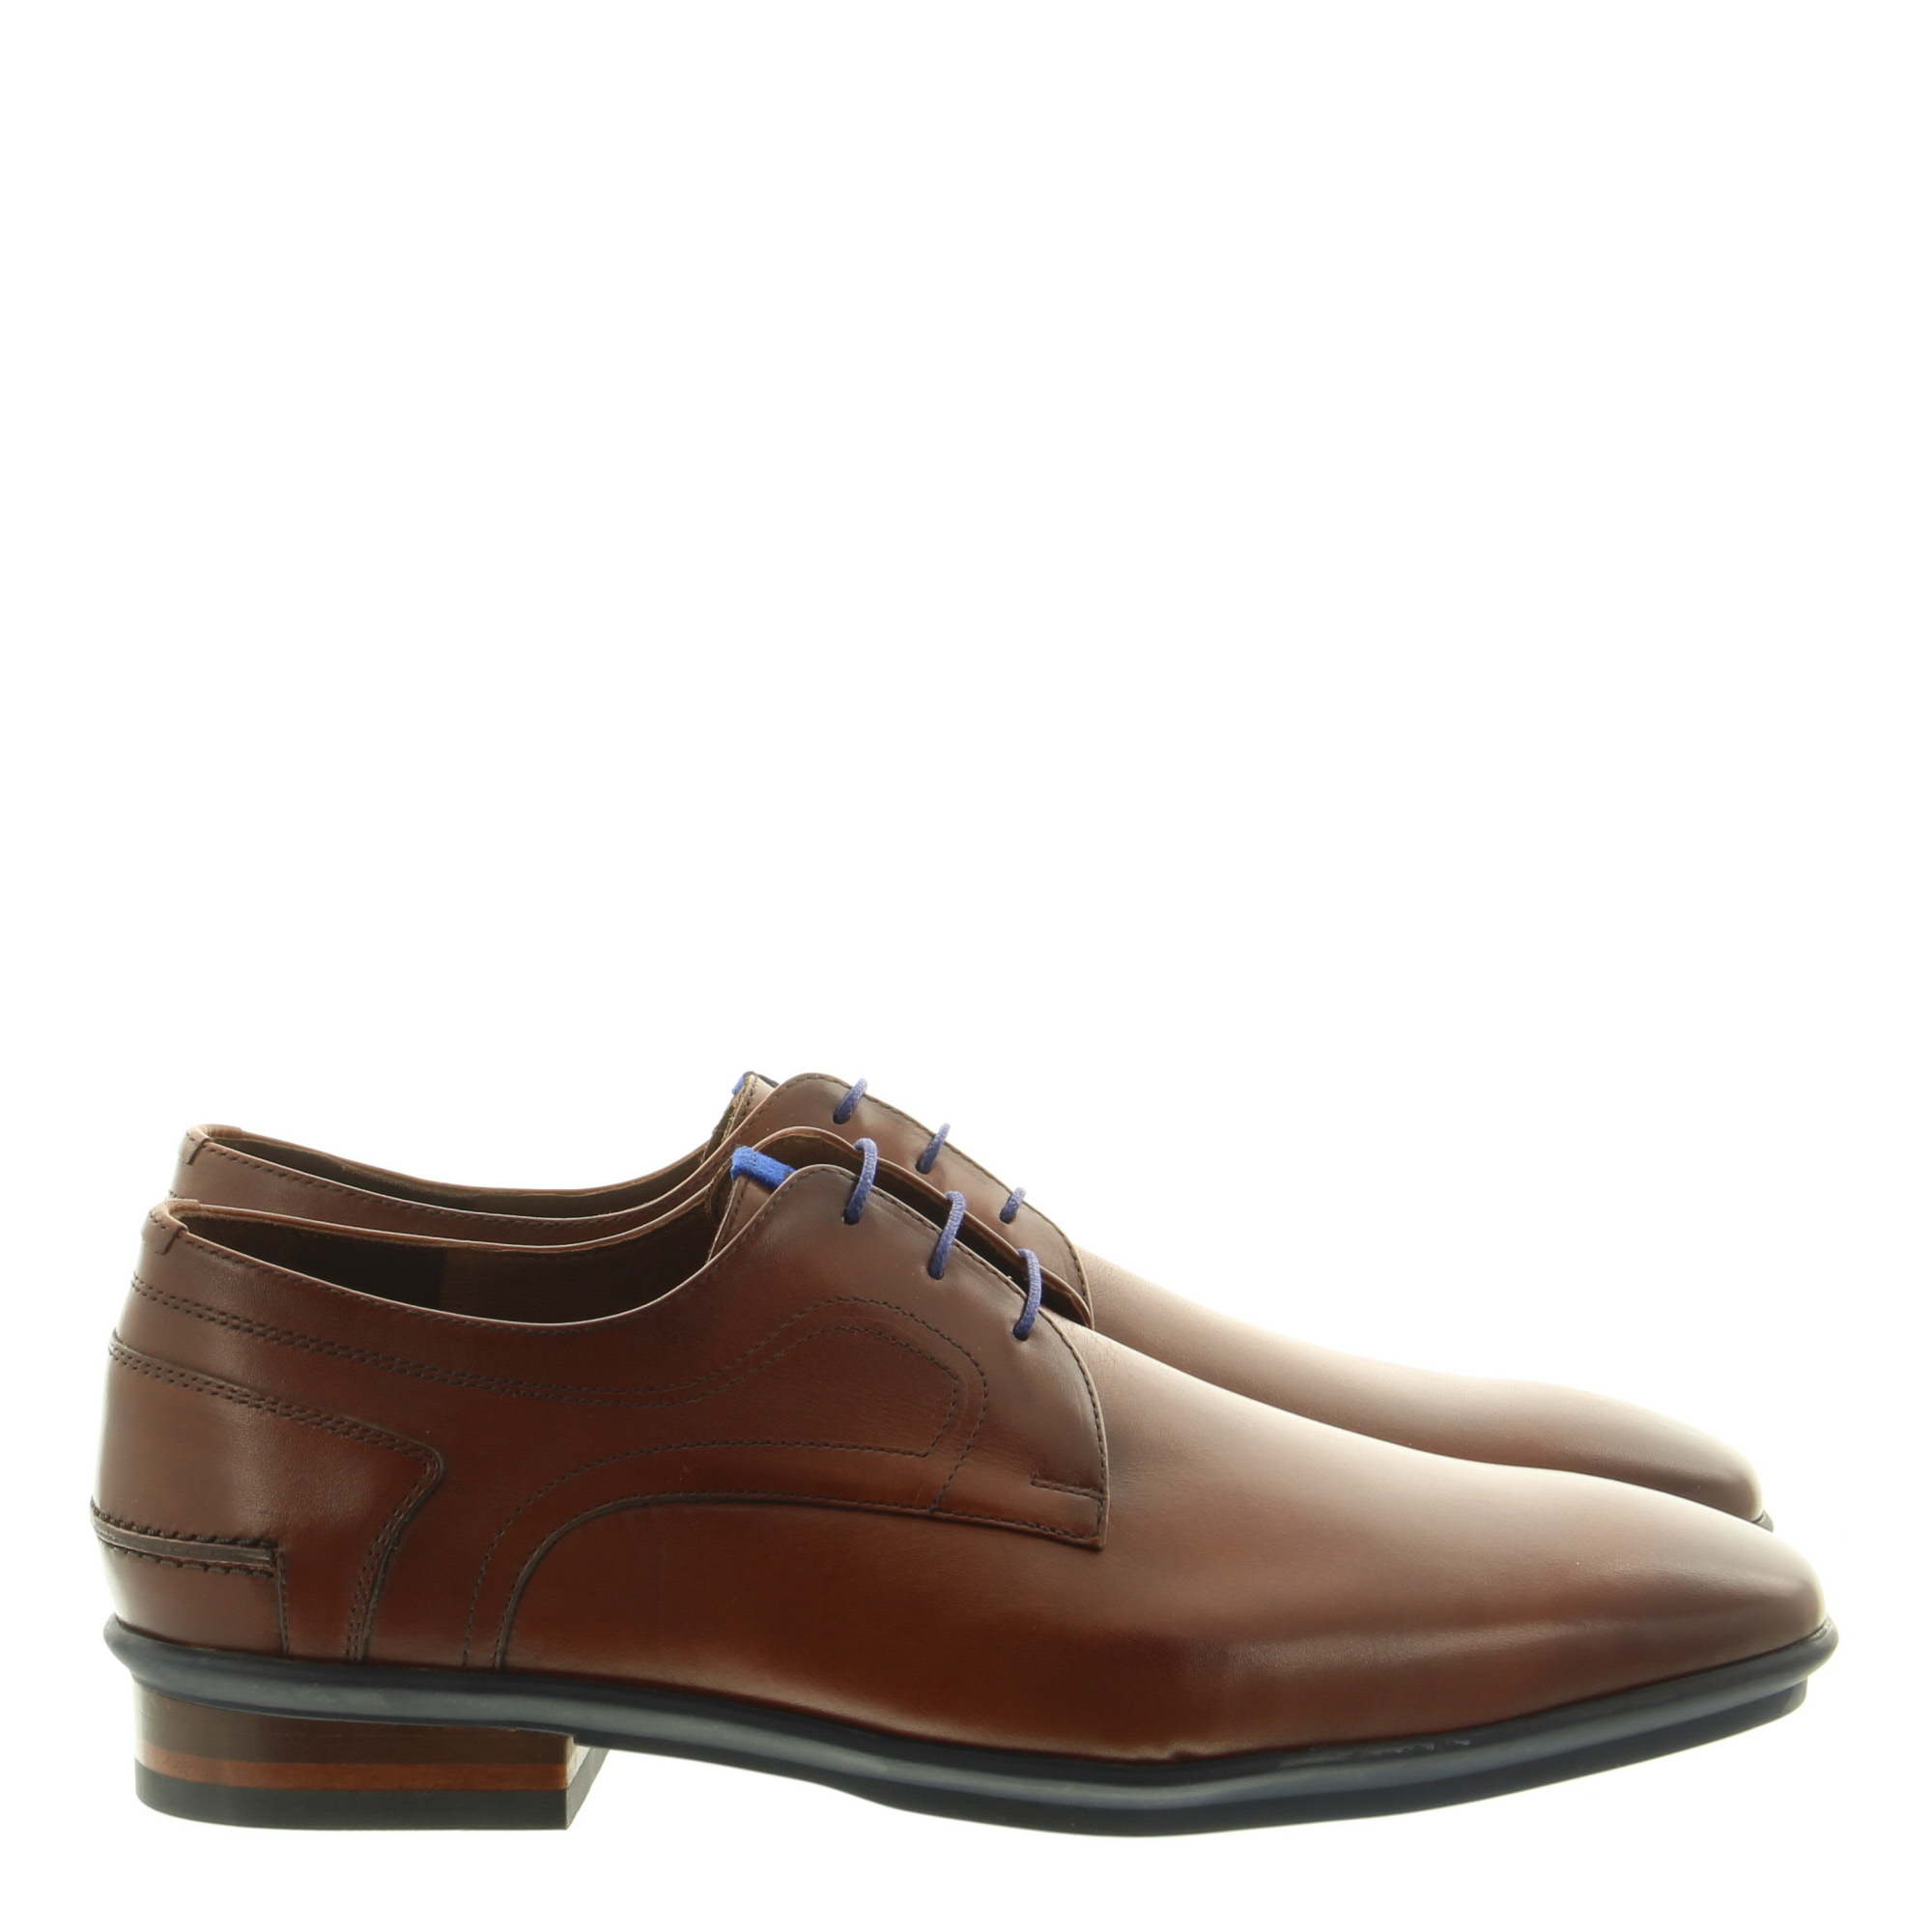 Floris van Bommel 18240 02 DarkCognac